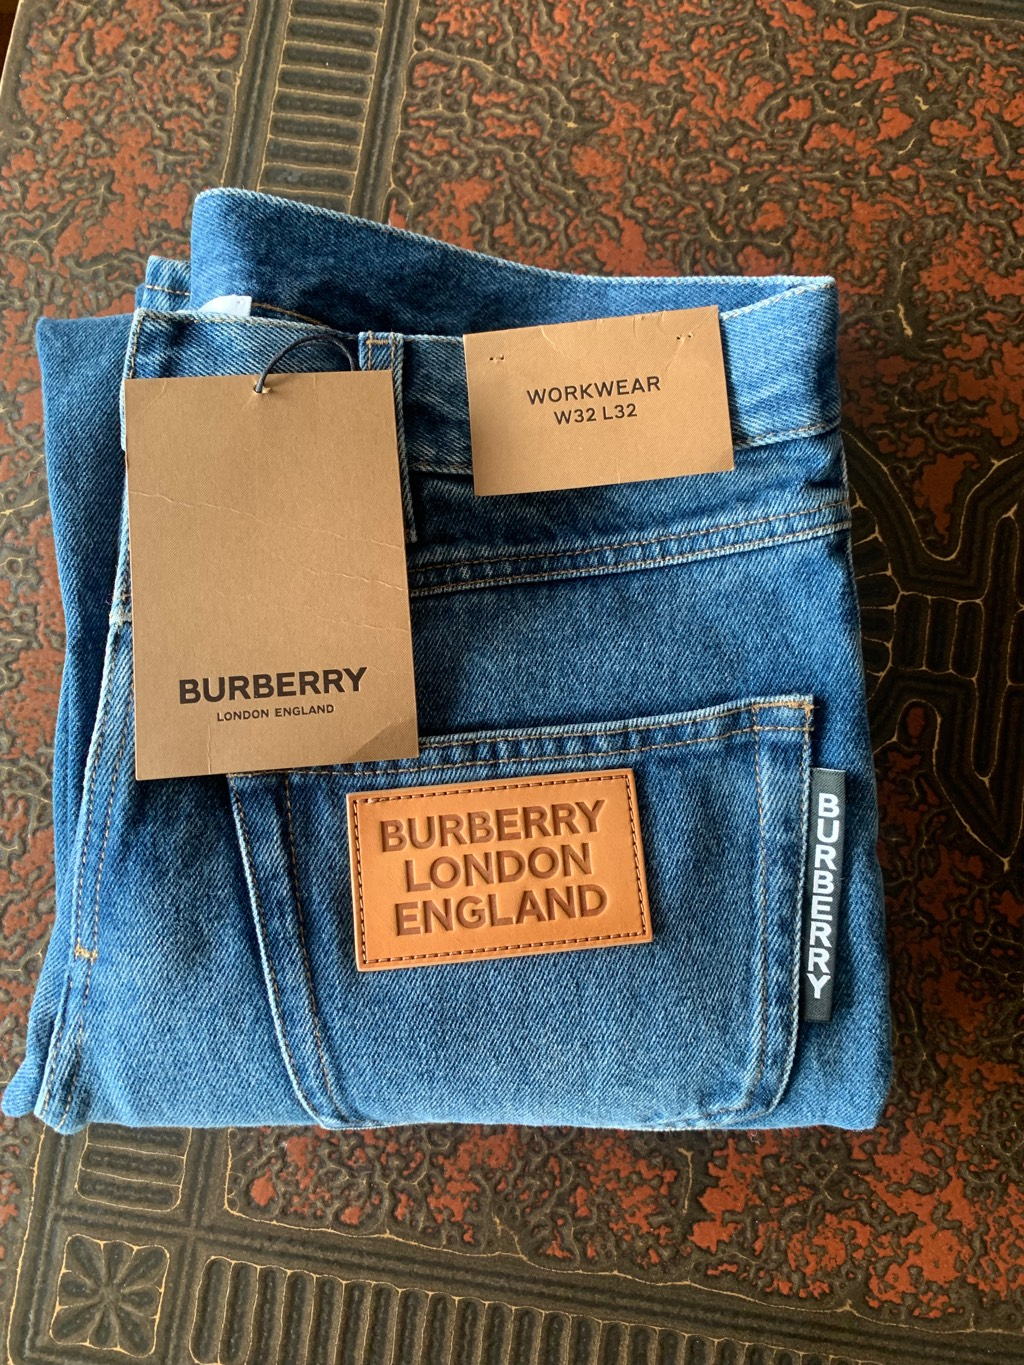 Burberry front-to-backBurberry4